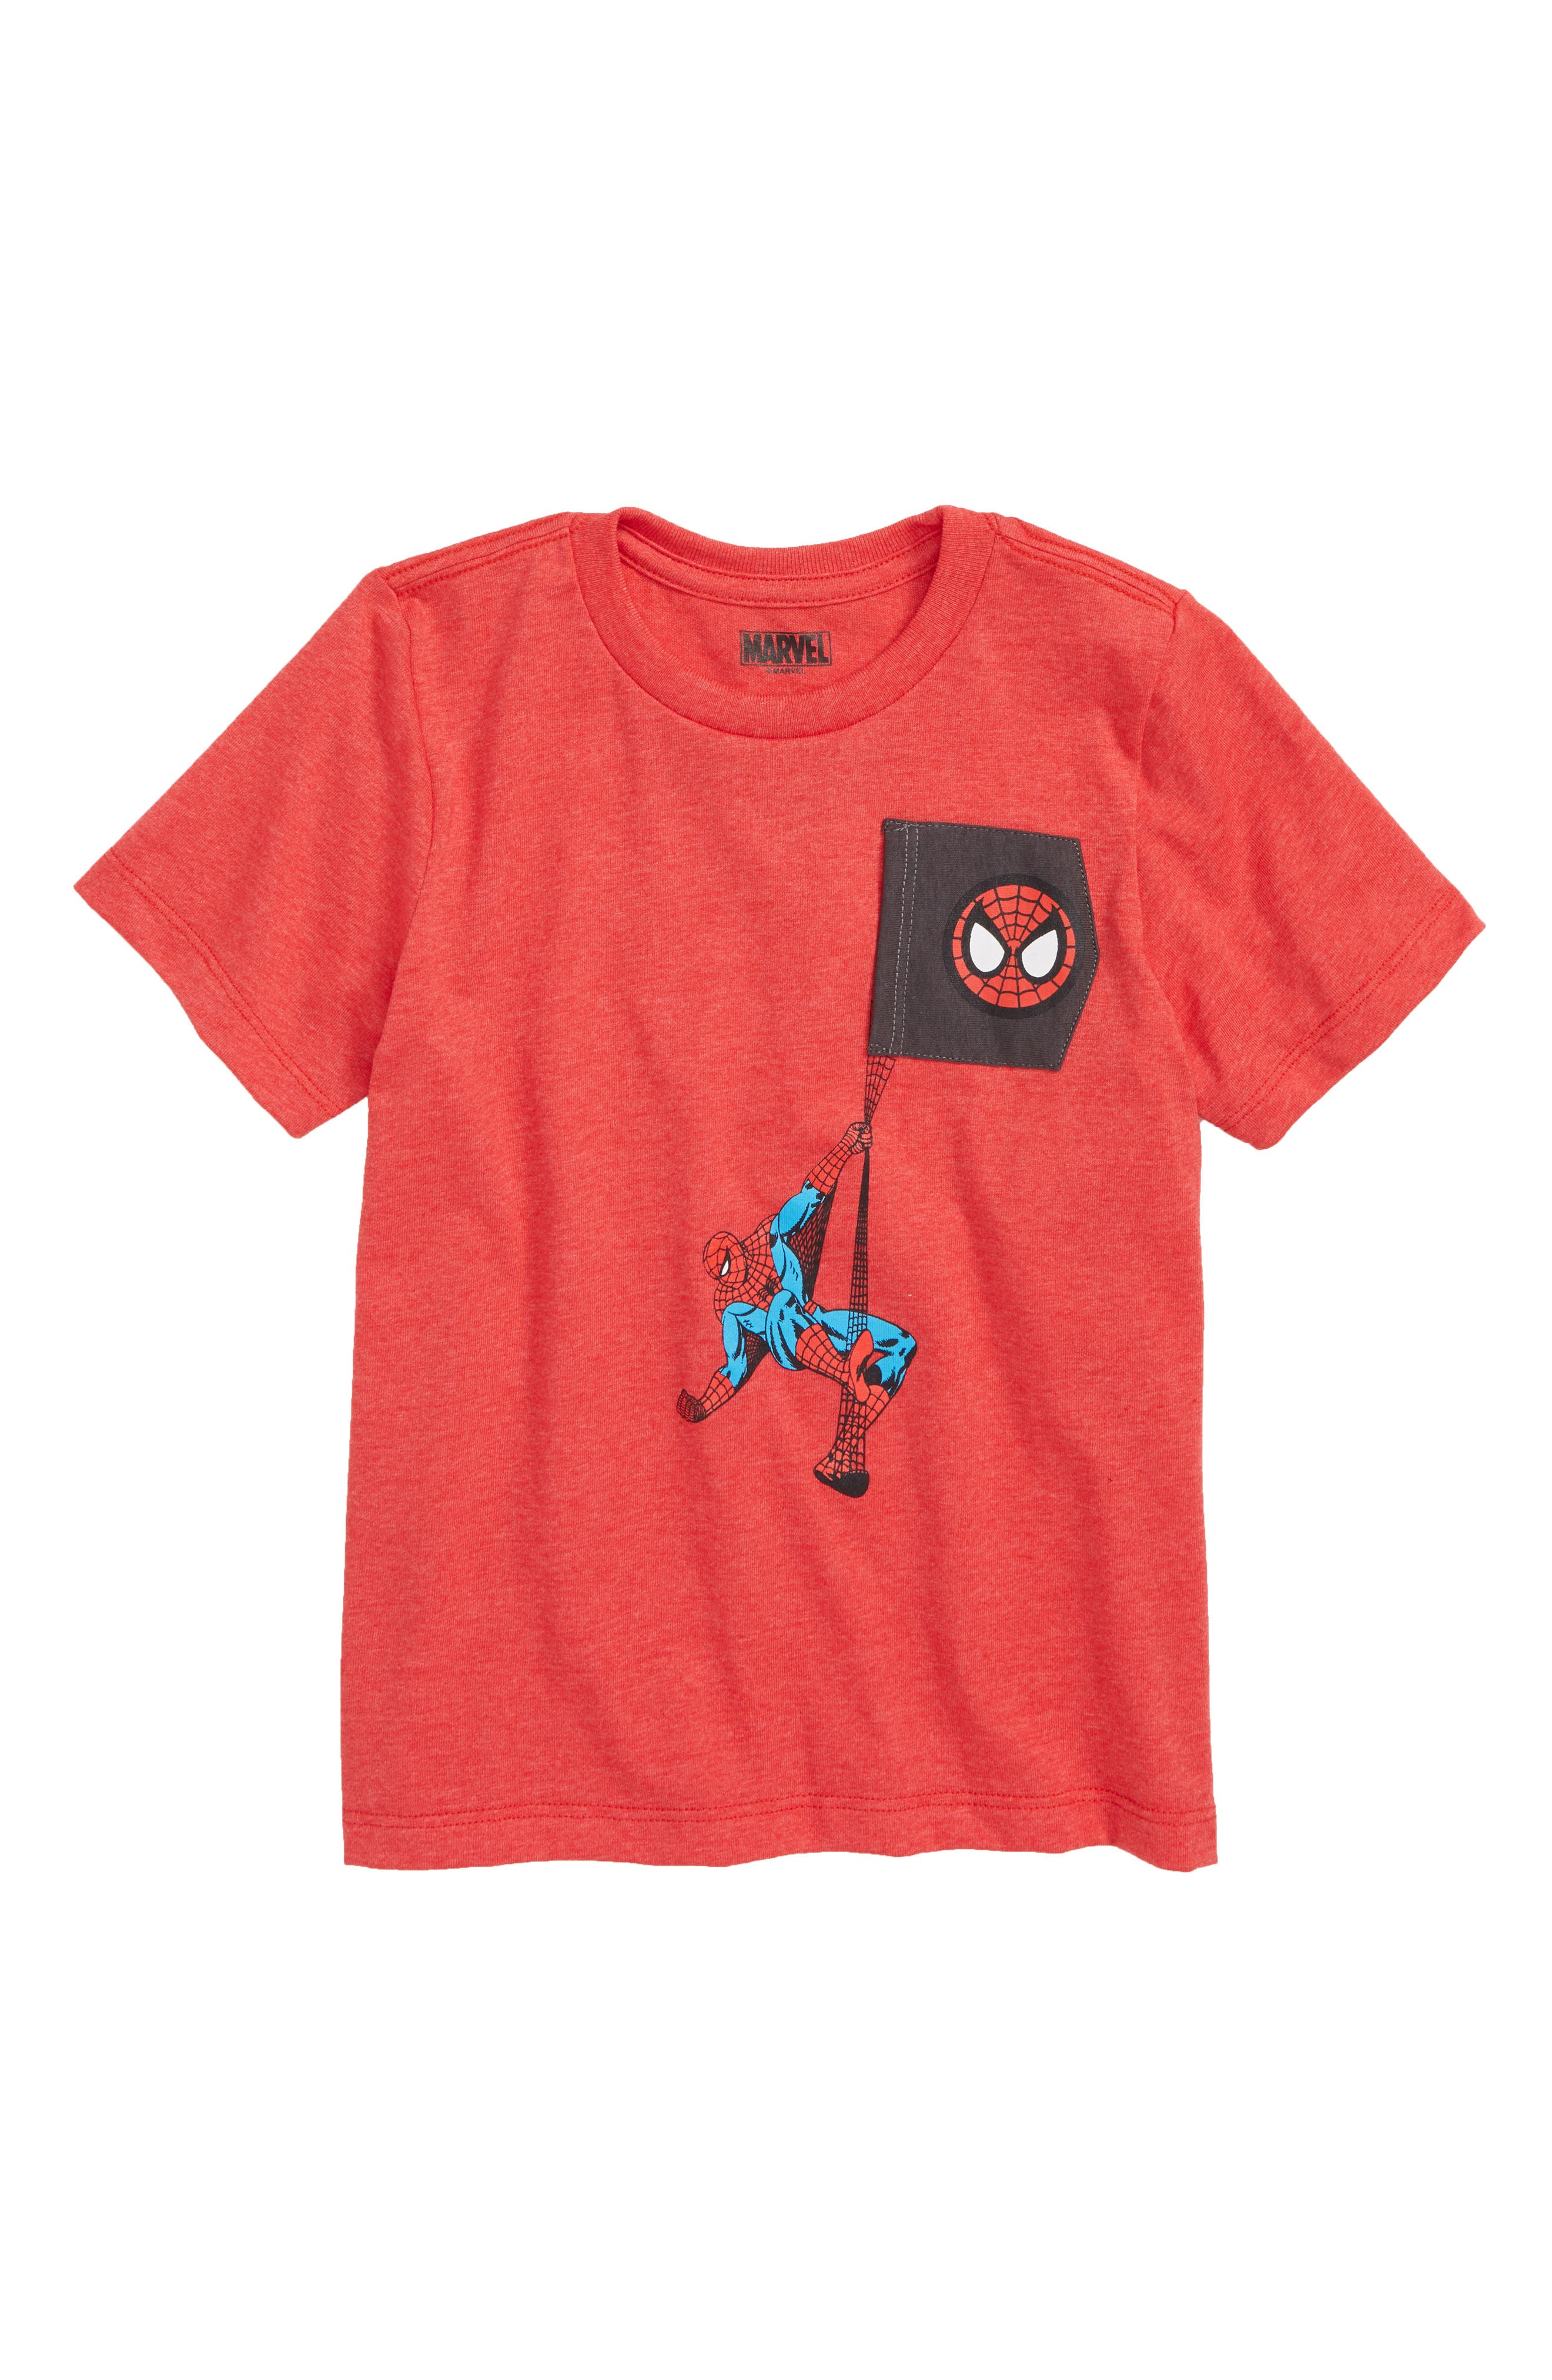 Spiderman Graphic T-Shirt,                         Main,                         color, 617